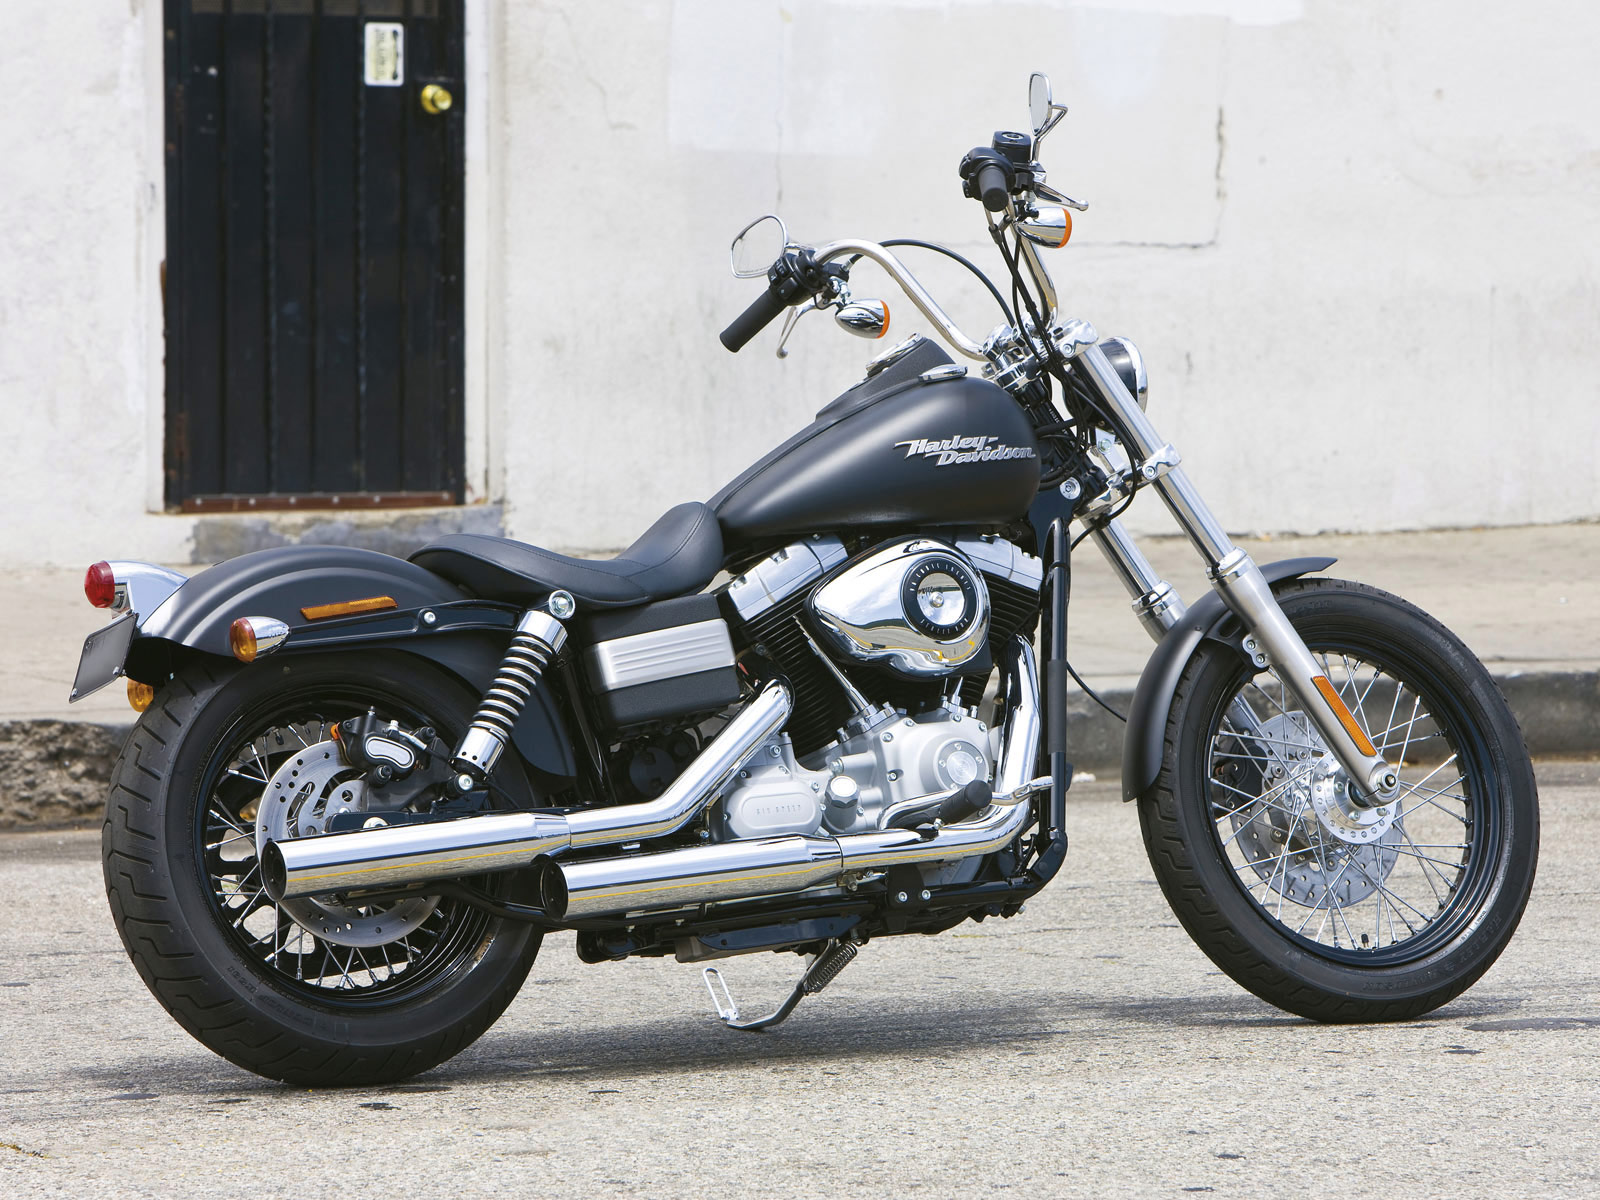 2009 FXDB Dyna Street Bob motorcycle pictures